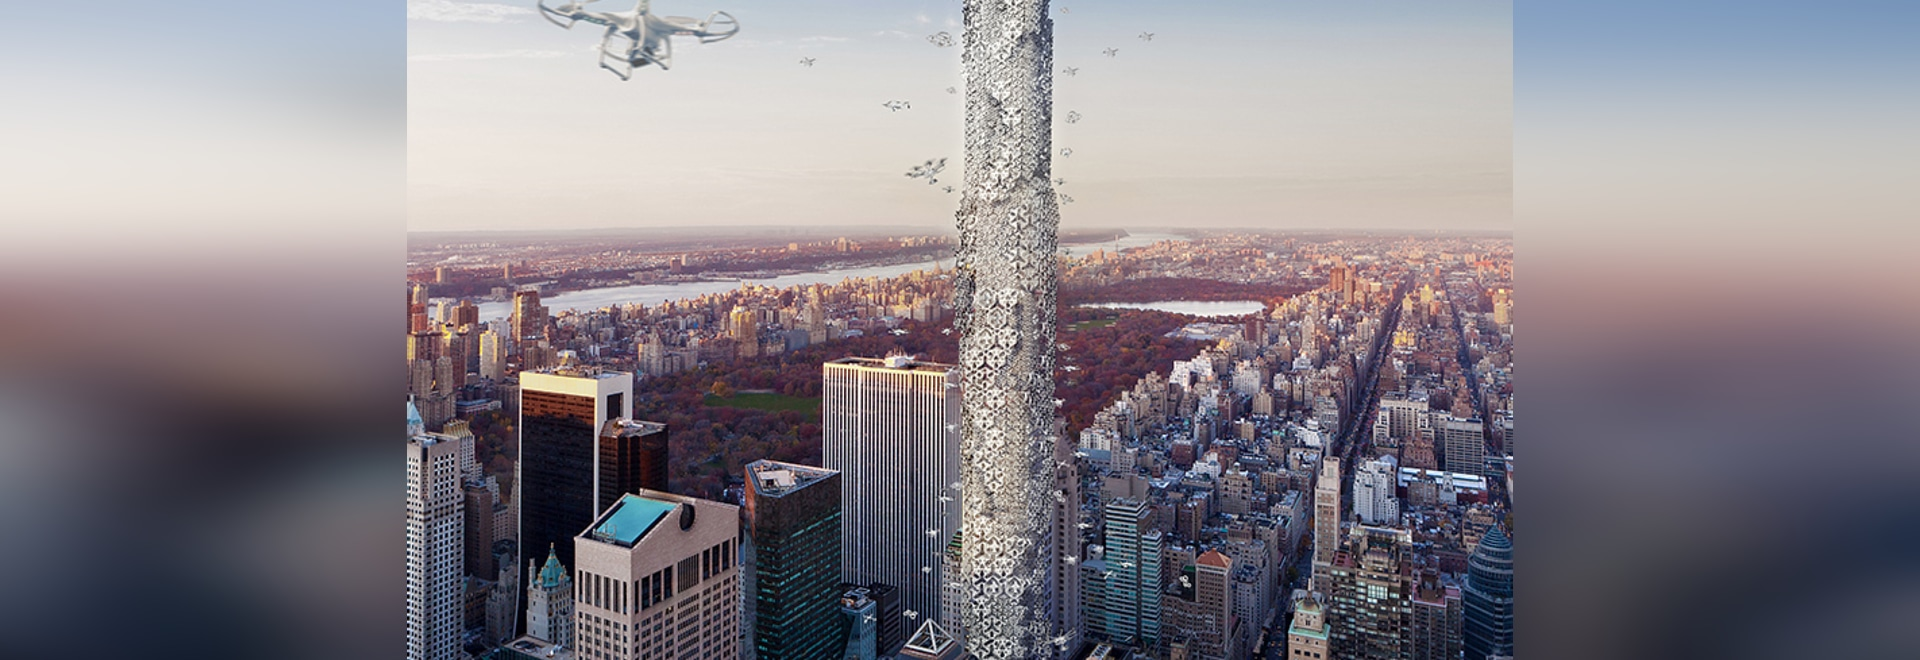 drone skyscraper allows unmanned aerial vehicles to dock in the center of manhattan